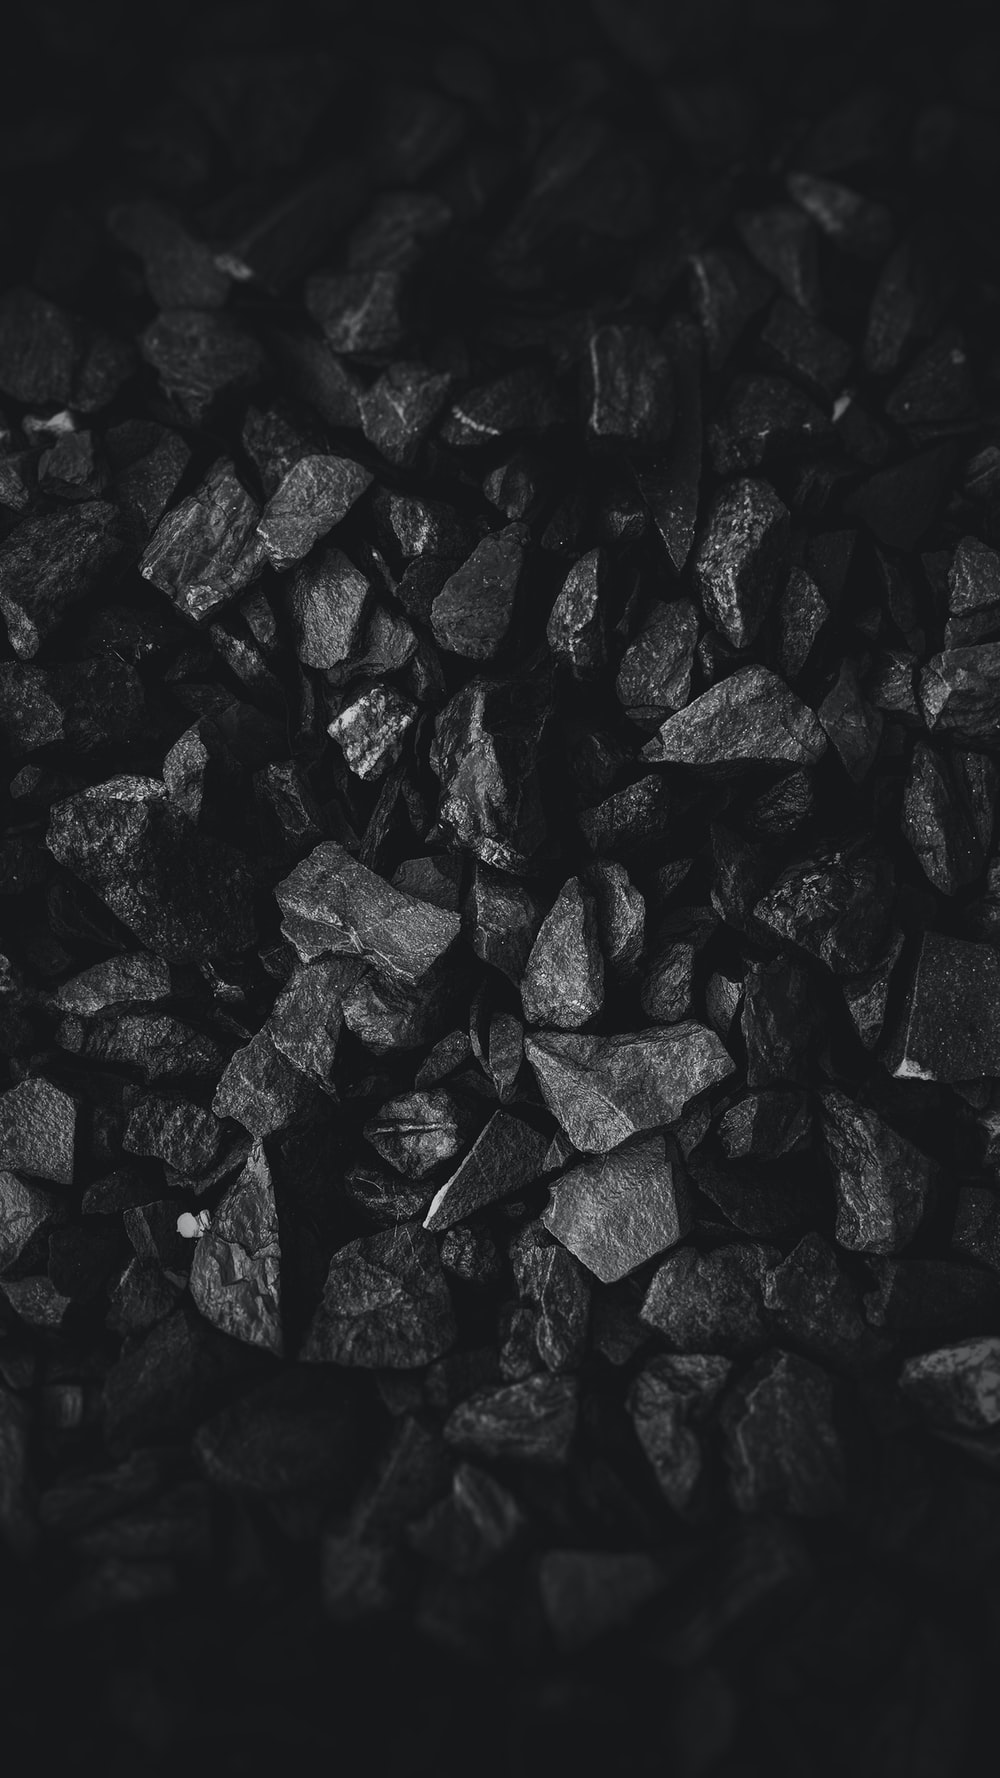 grayscale photo of stone